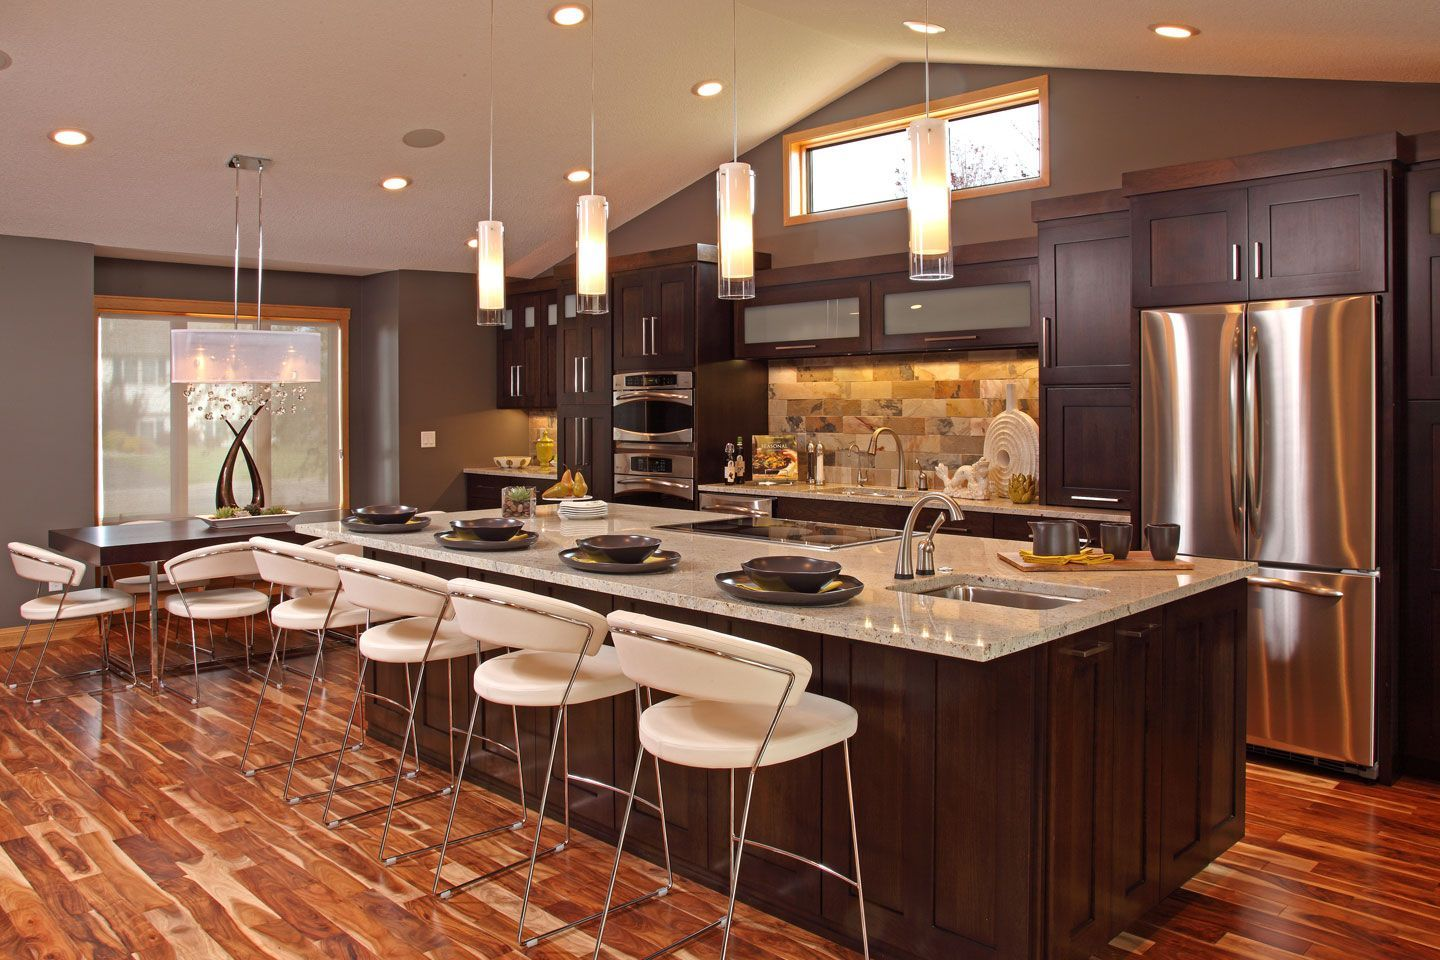 Galley kitchen design with island